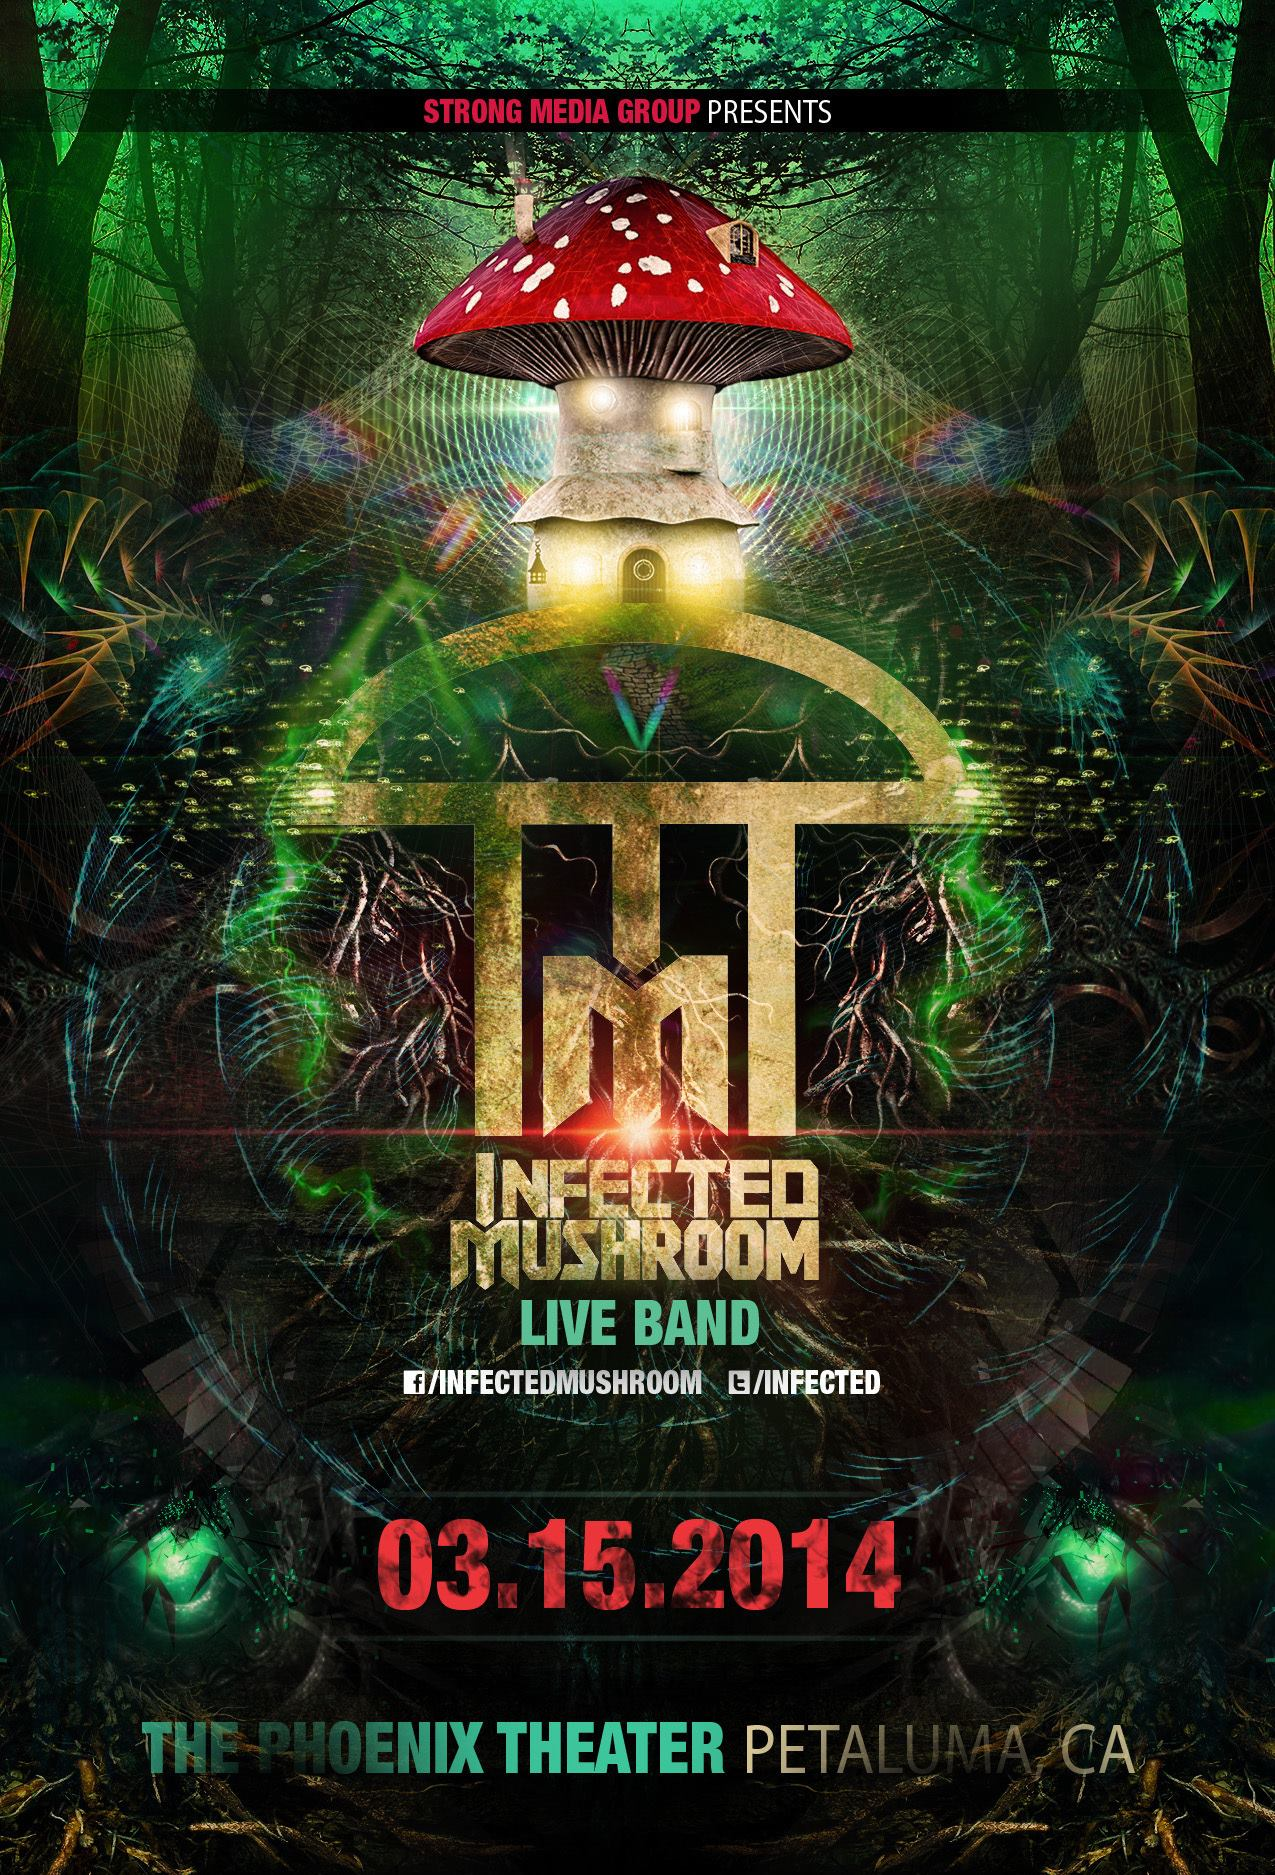 Infected Mushroom Songs Minimalist infected mushroom concert, videos, phoenix, petaluma, ca